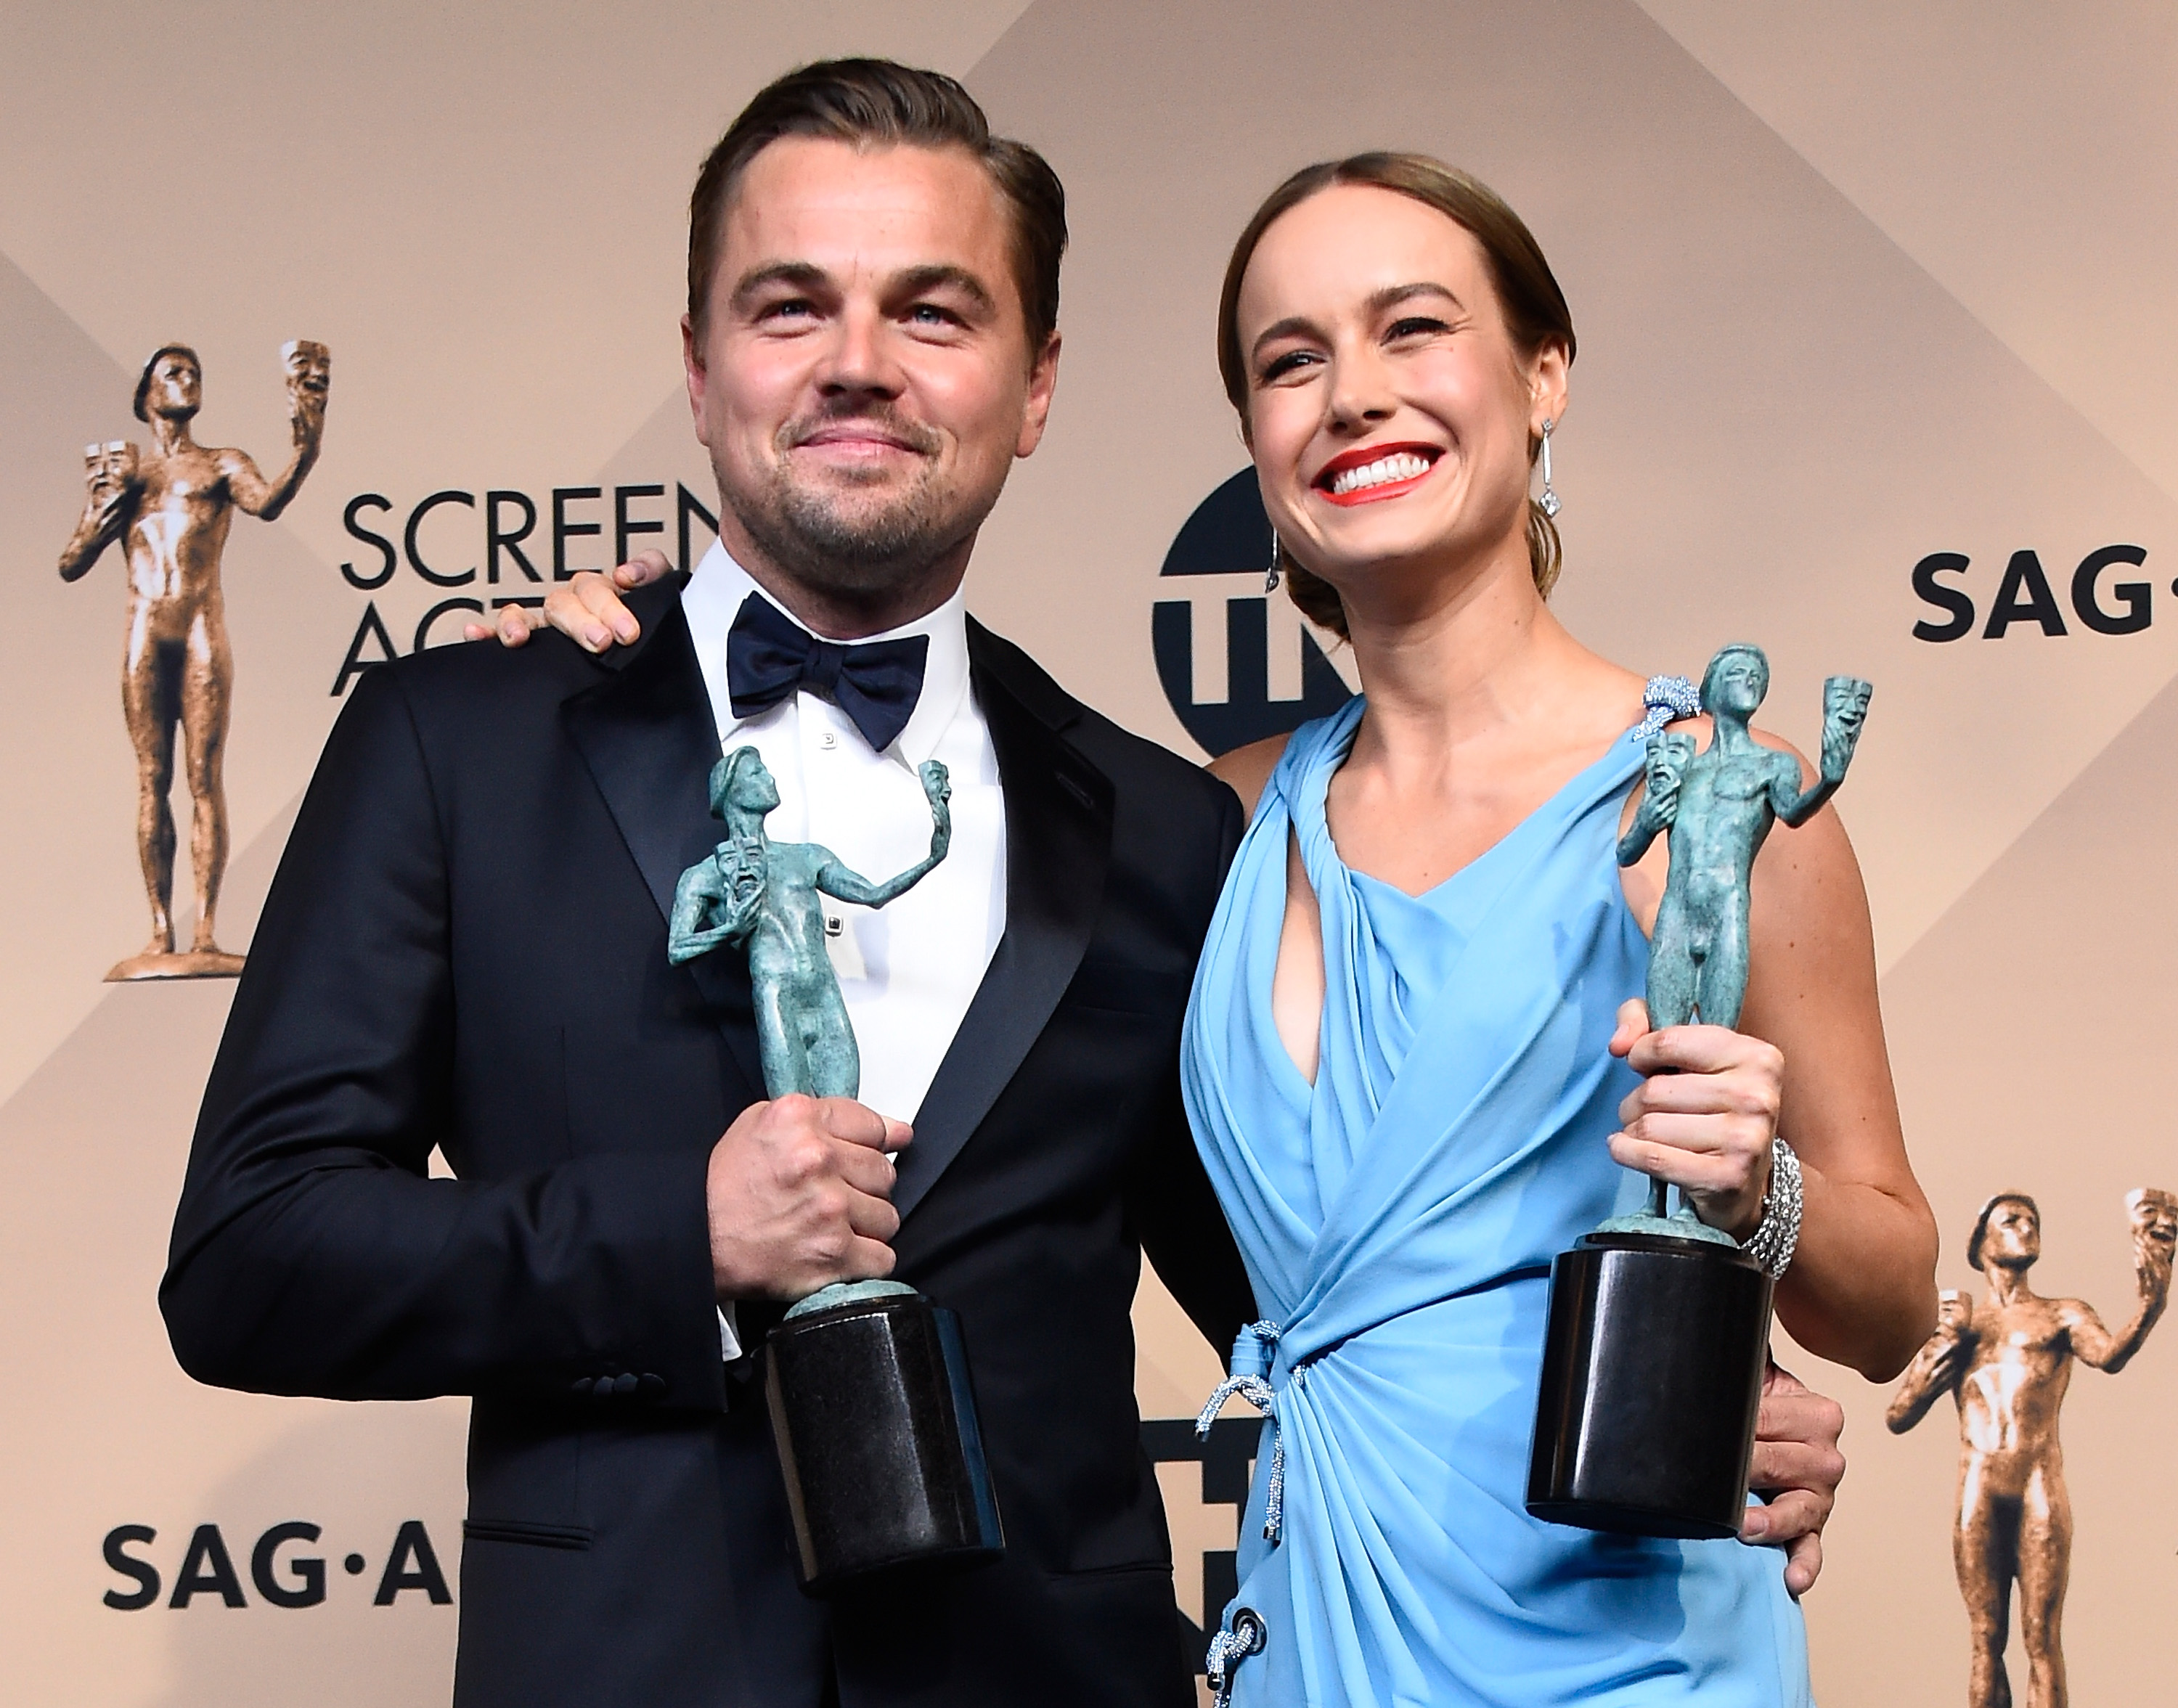 LOS ANGELES, CA - JANUARY 30: Actors Leonardo DiCaprio (L), winner of Outstanding Performance By a Male Actor in a Leading Role for 'The Revenant,' and Brie Larson winner of Outstanding Performance By a Female Actor in a Leading Role for 'The Room,' pose in the press room during the 22nd Annual Screen Actors Guild Awards at The Shrine Auditorium on January 30, 2016 in Los Angeles, California. Frazer Harrison/Getty Images/AFP